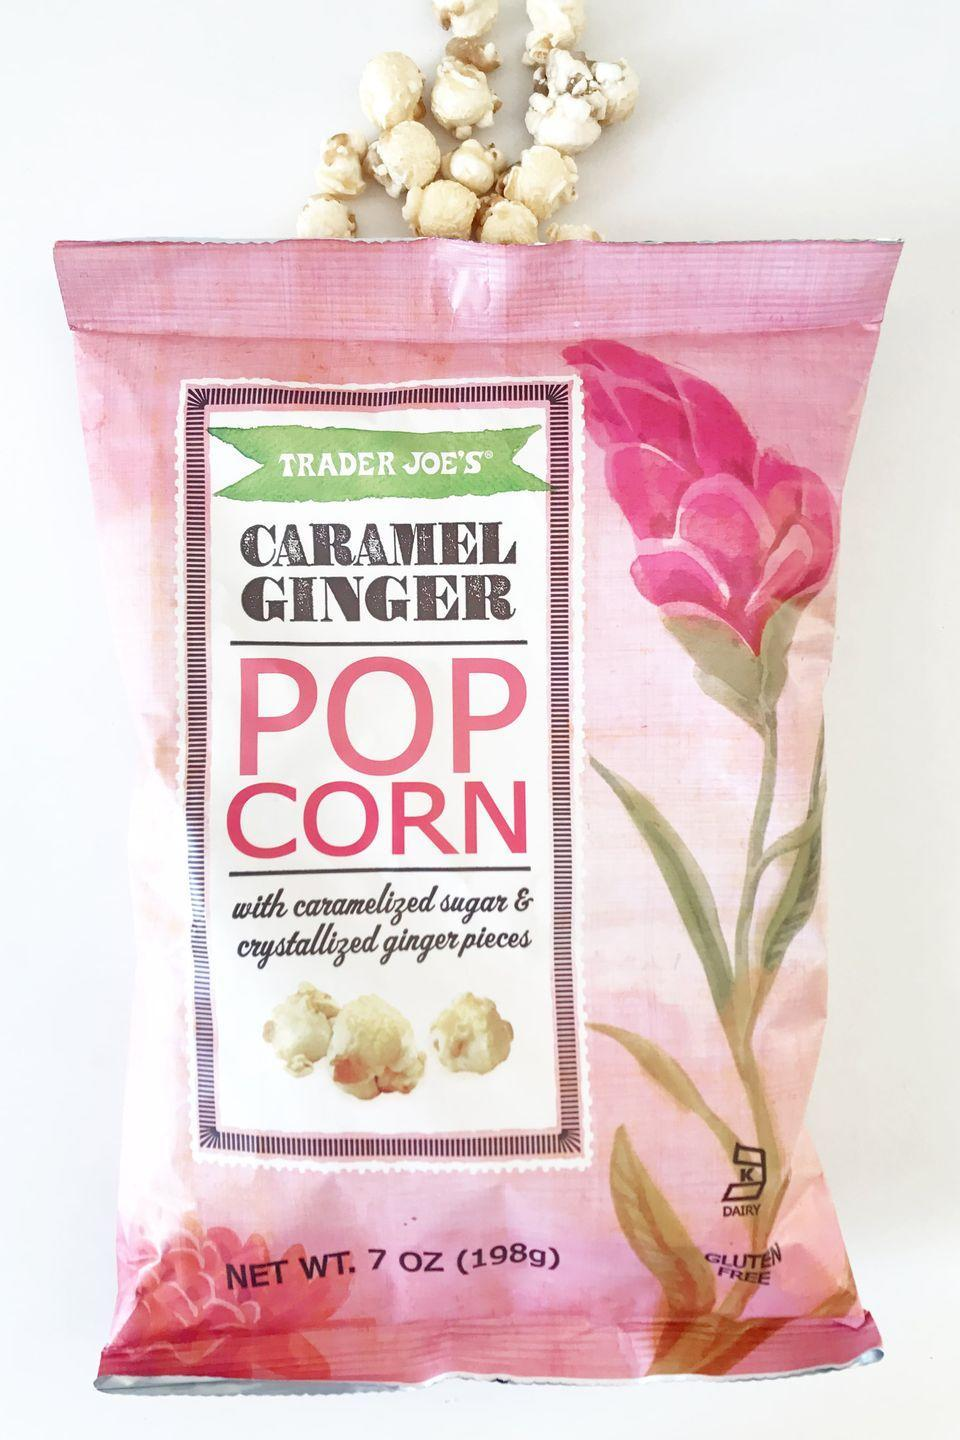 """<p>Popcorn can be a healthy alternative to snacks like potato chips...when it's prepared correctly. This Caramel Ginger Popcorn doesn't make the cut. """"What makes the Caramel Ginger Popcorn really bad is the sugar combined with the caramelization,"""" says Glen Wilde, CEO and founder of <a href=""""https://diettosuccess.com/"""" rel=""""nofollow noopener"""" target=""""_blank"""" data-ylk=""""slk:Diet to Success"""" class=""""link rapid-noclick-resp"""">Diet to Success</a>. """"The sugar alone is bad enough, but the caramel makes that sugar stick to your teeth, making it a cavity-inducing snack. A single one-cup serving contains just 110 calories, but a whopping 19g sugar. That's equivalent to half a can of Pepsi."""" </p>"""